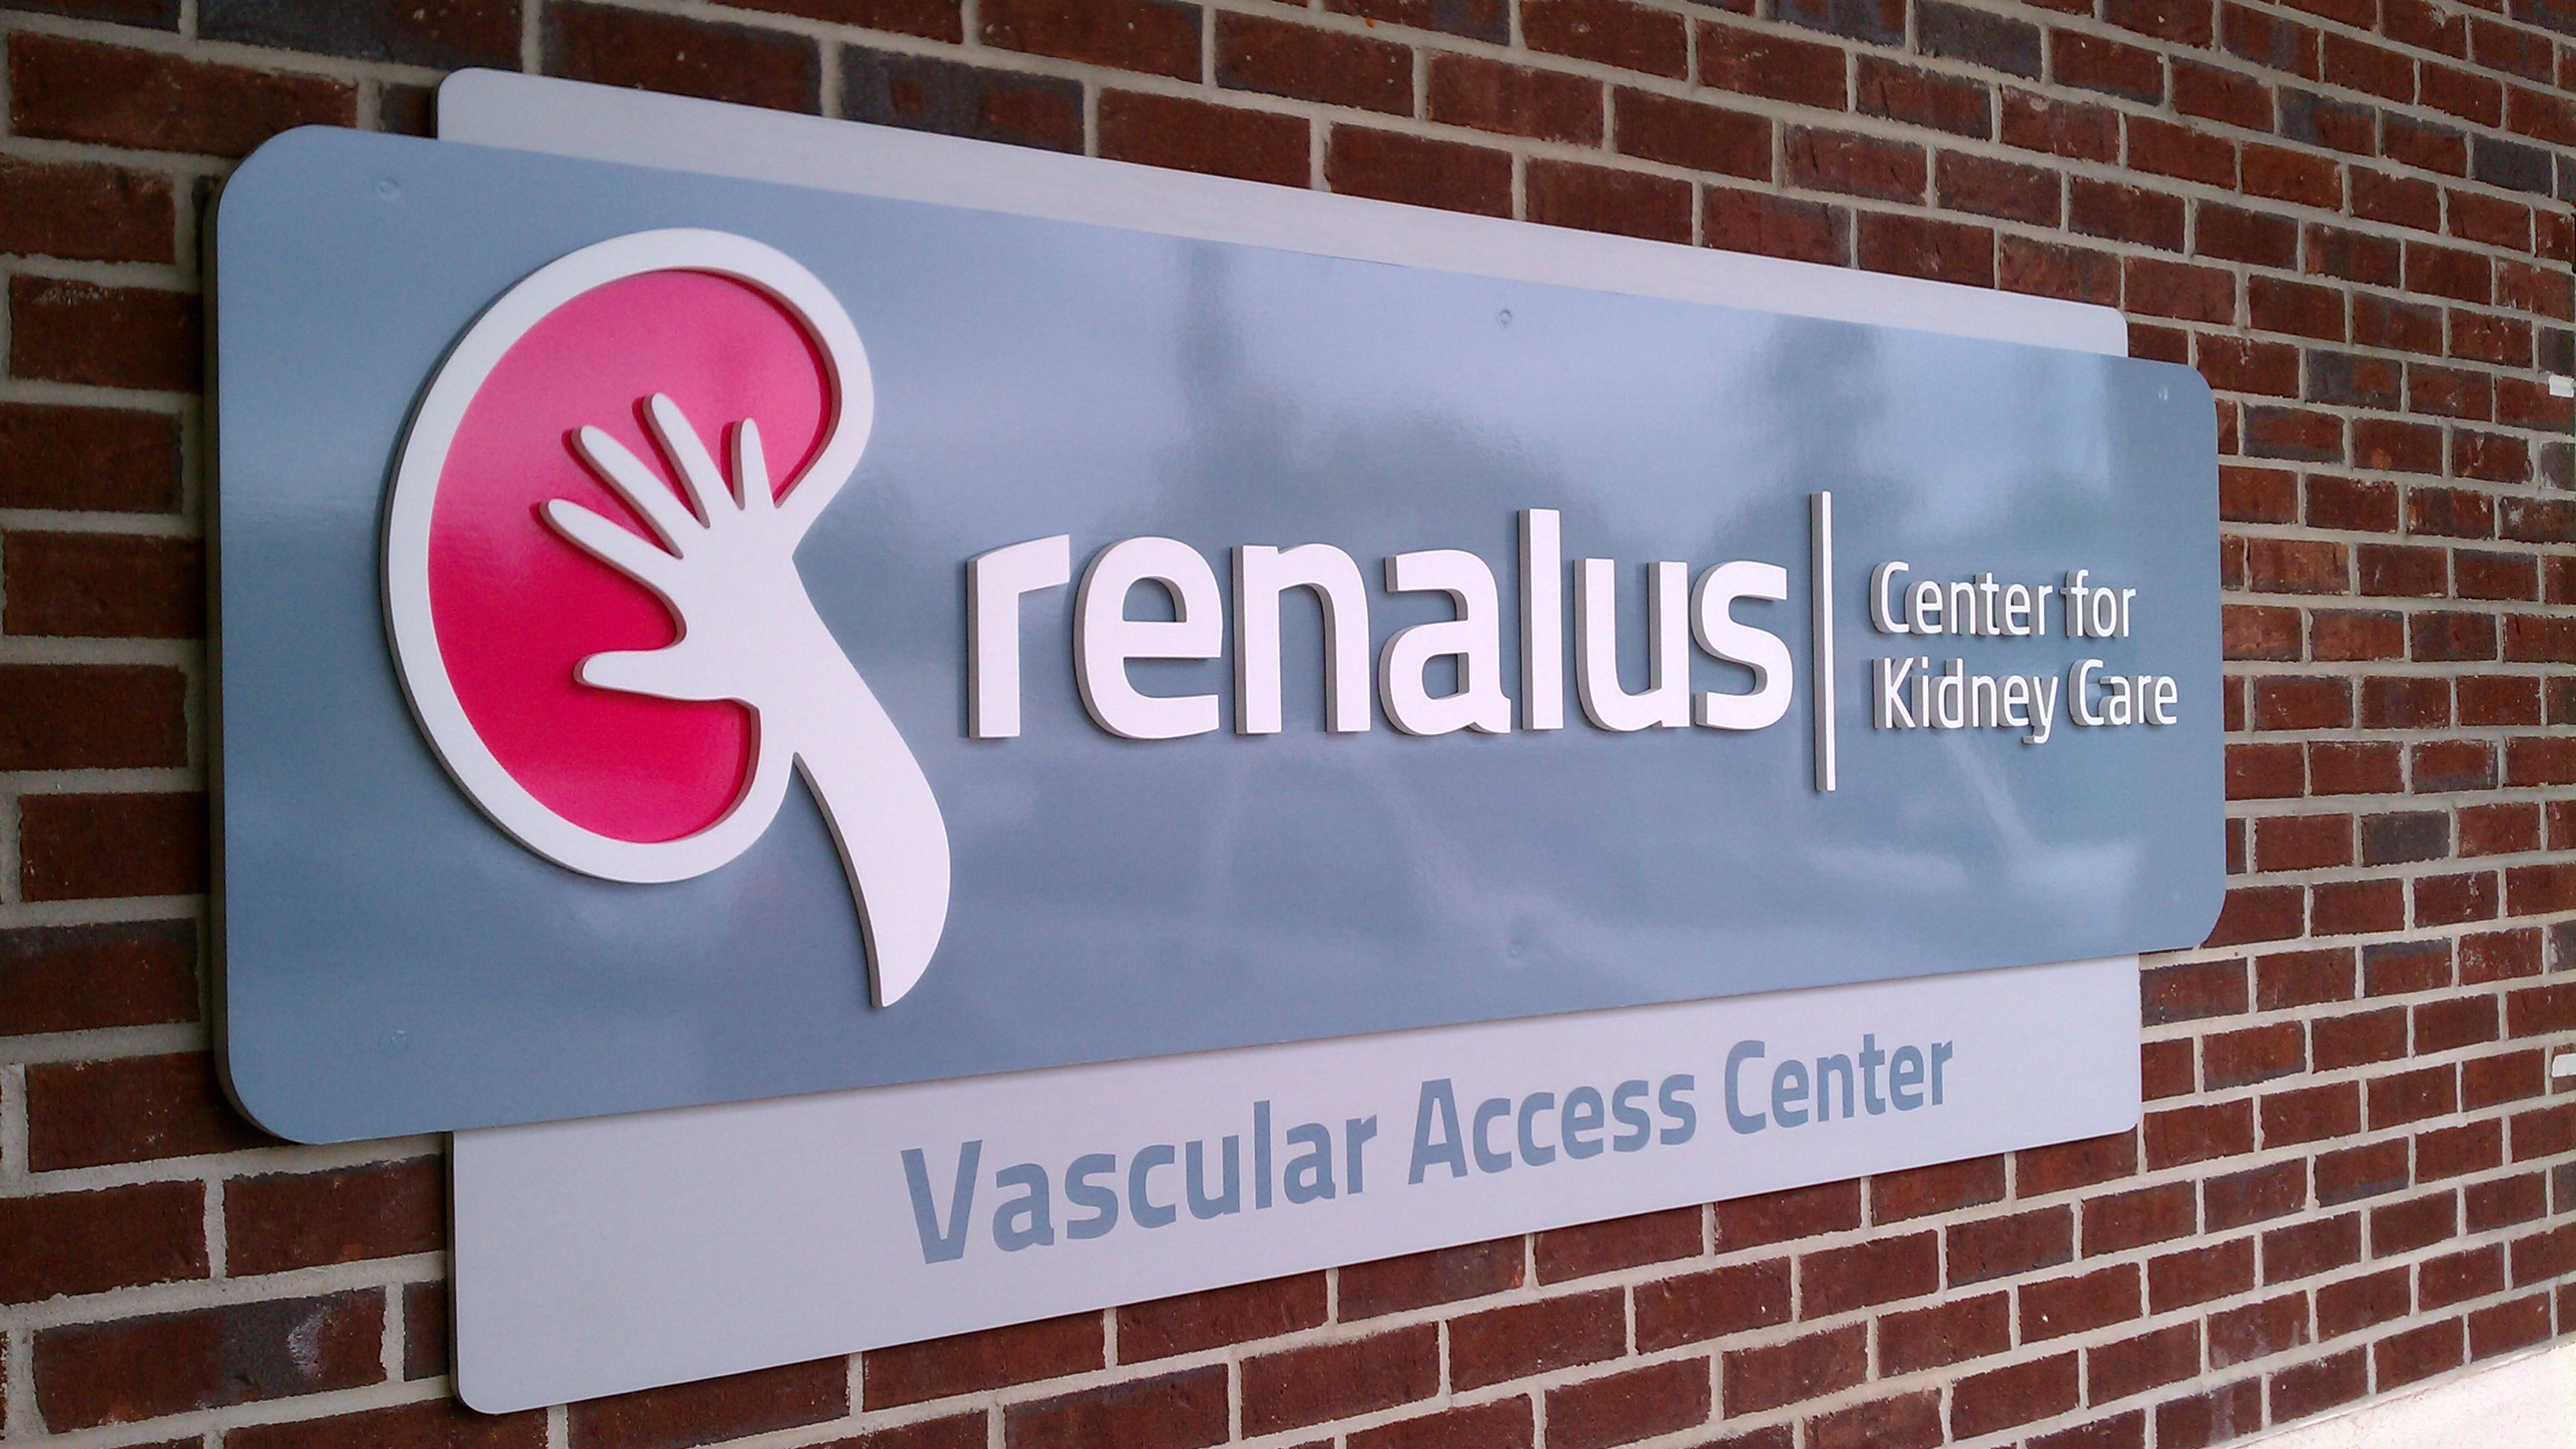 Exterior Dimensional Sign Letters for Healthcare Branding